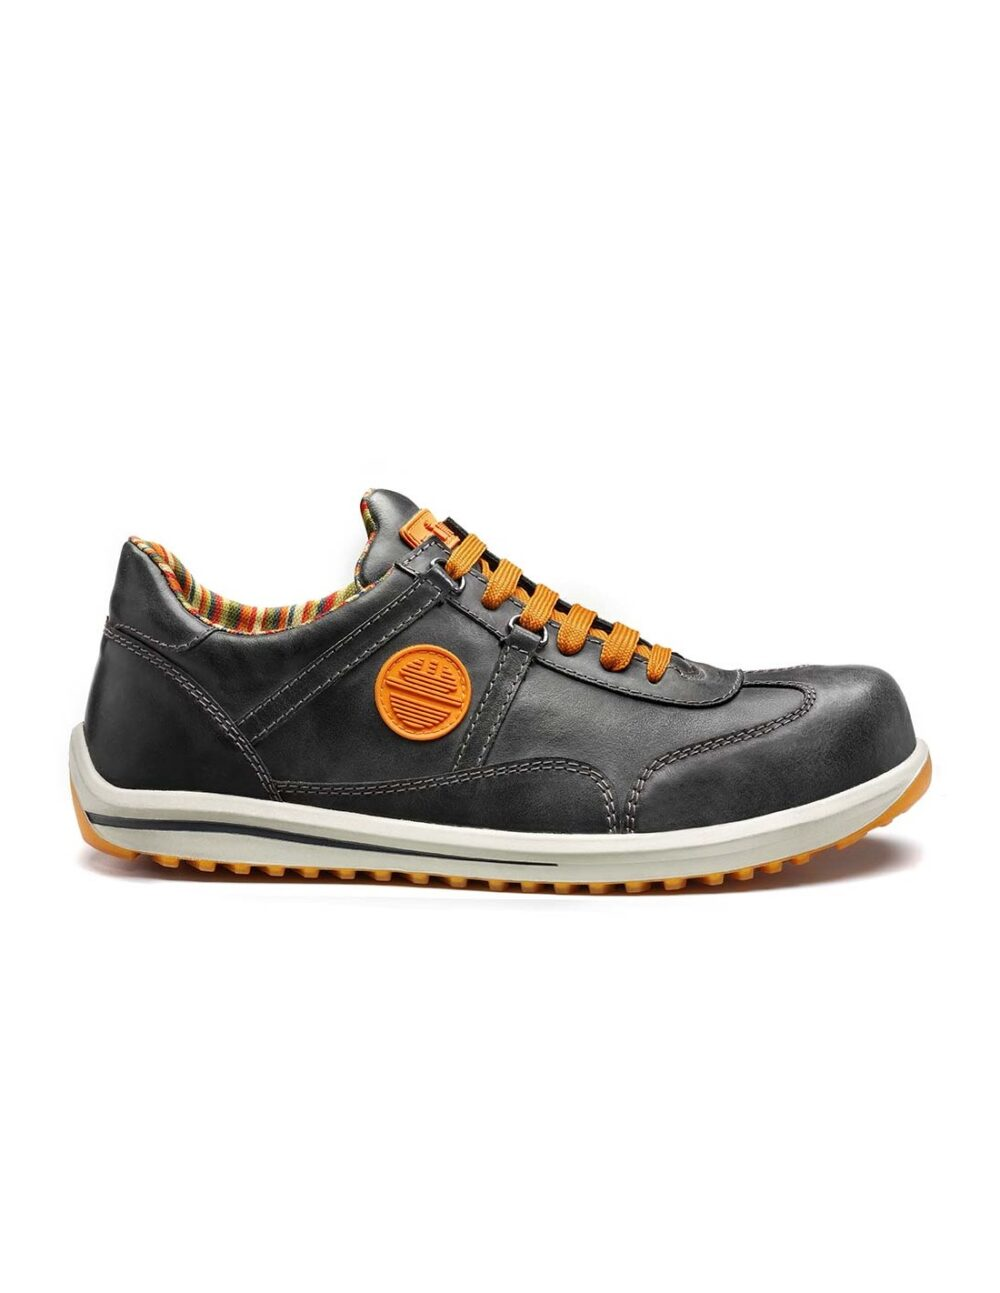 Raving Safety shoe in black by dike